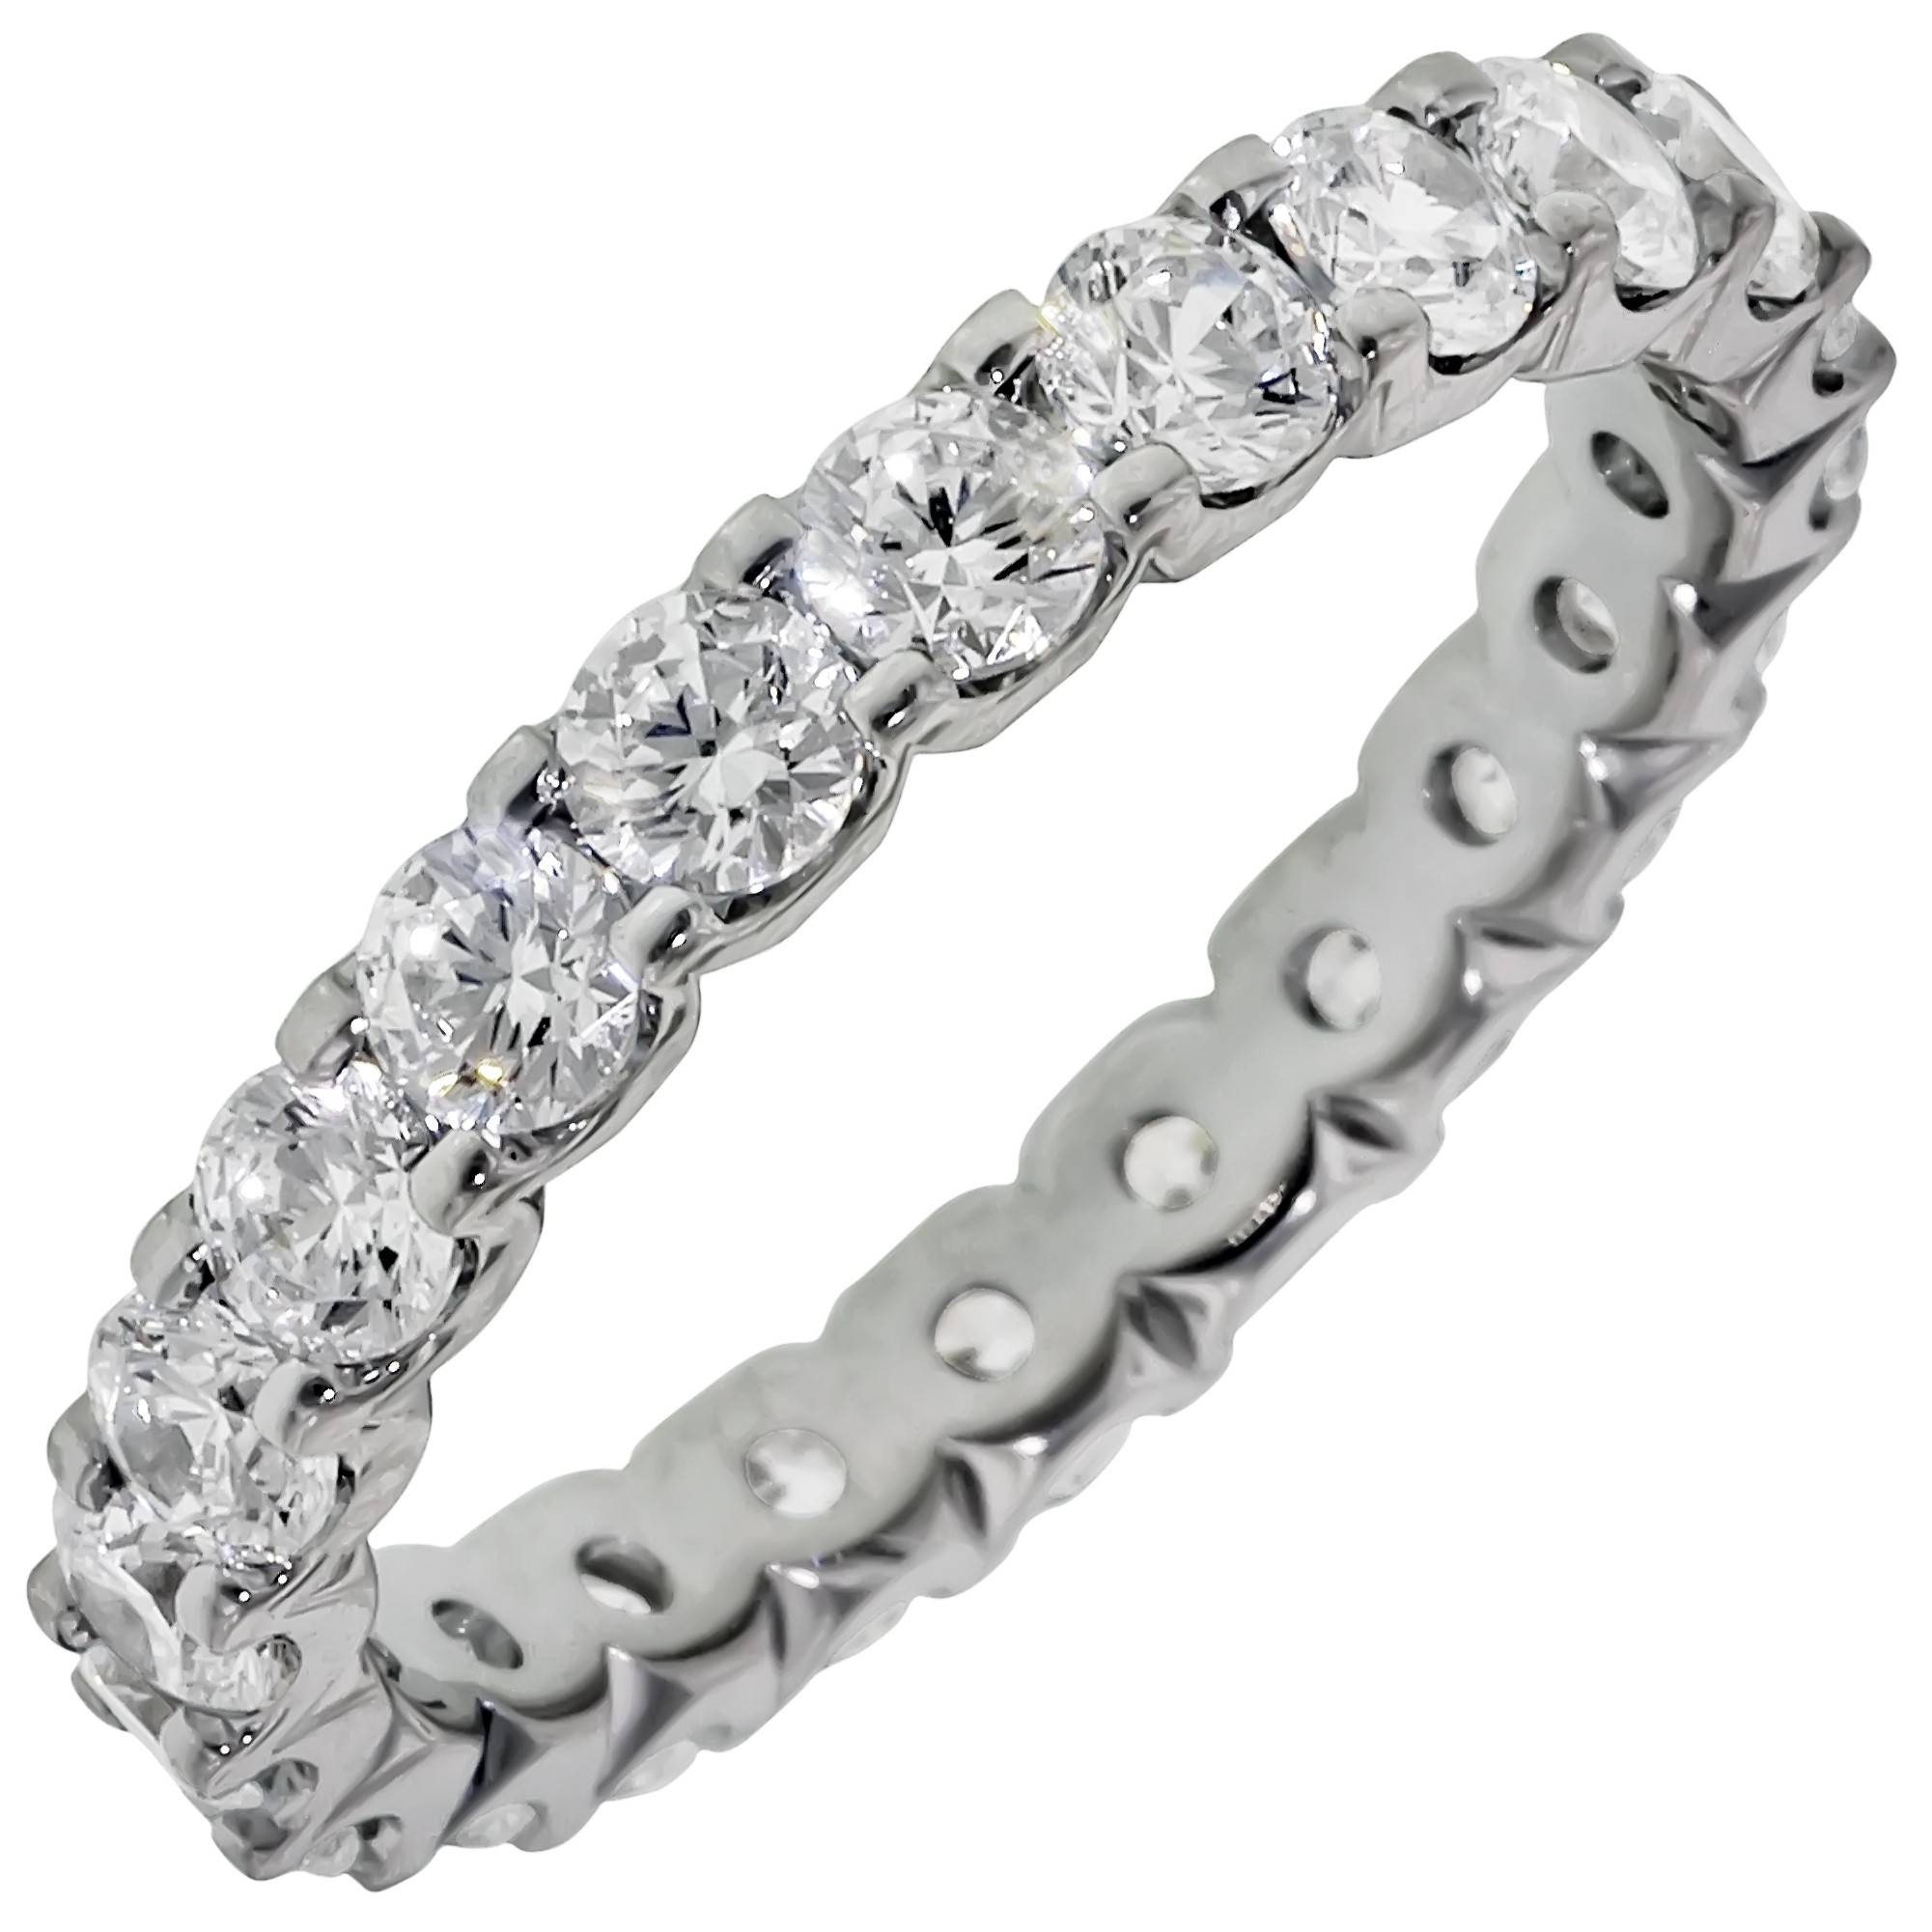 Just Perfect Diamond Eternity Wedding Band In 14Kt White Gold (2Ct Tw) For Most Recent Diamond Eternity Wedding Bands (View 12 of 15)